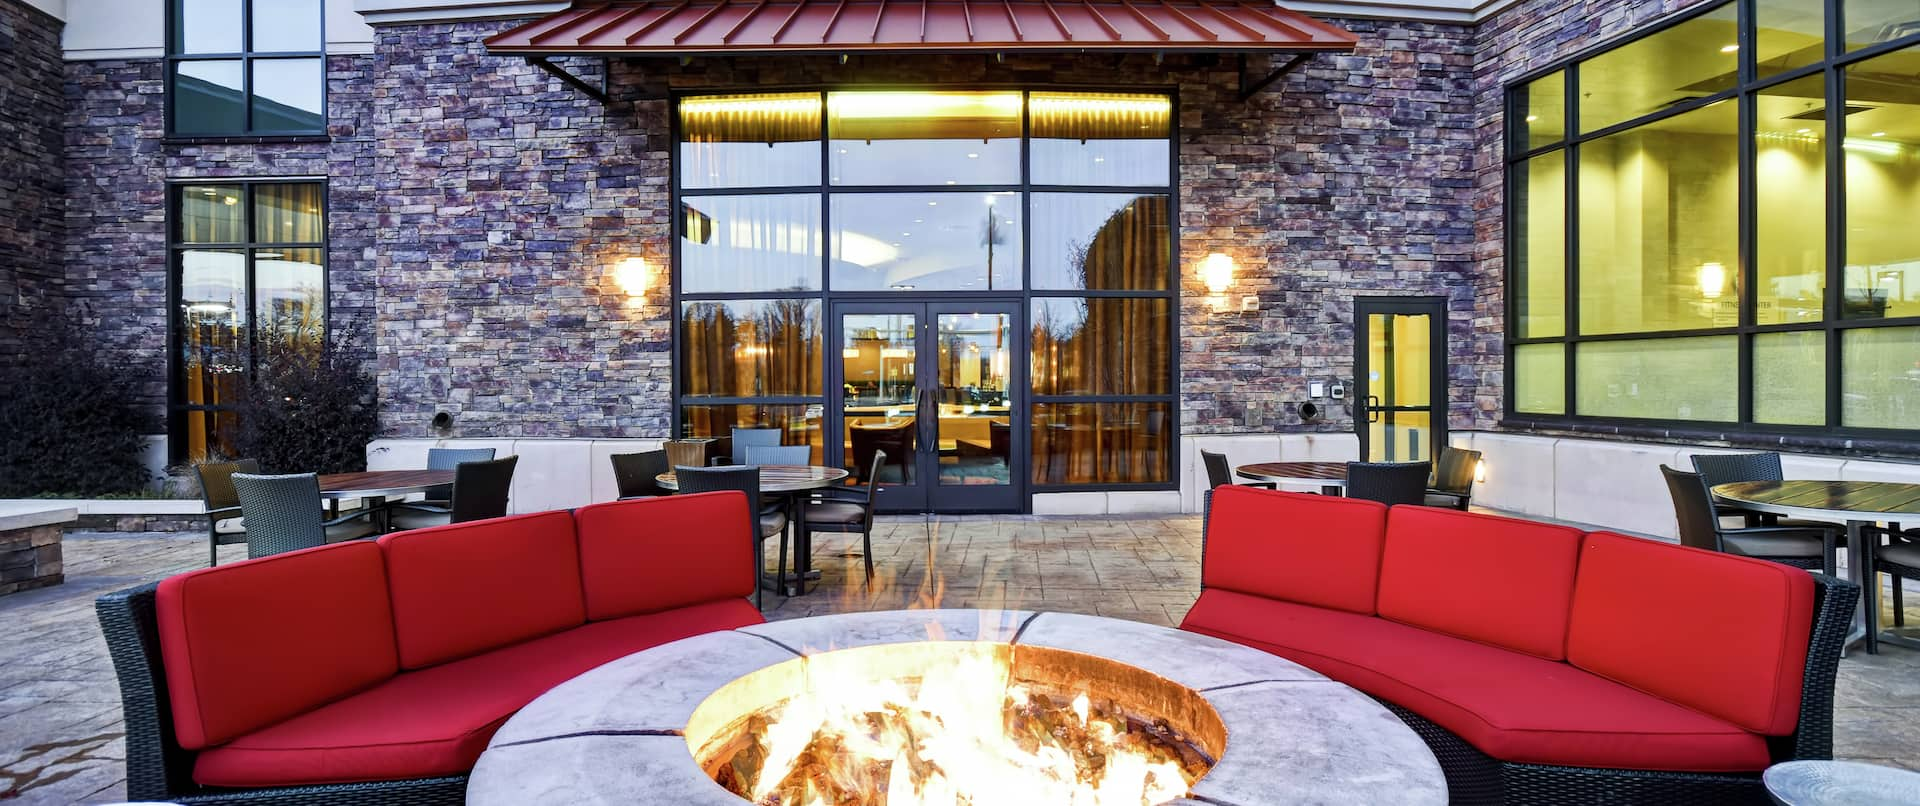 Crossroads Restaurant Outdoor Seating and Fire Pit